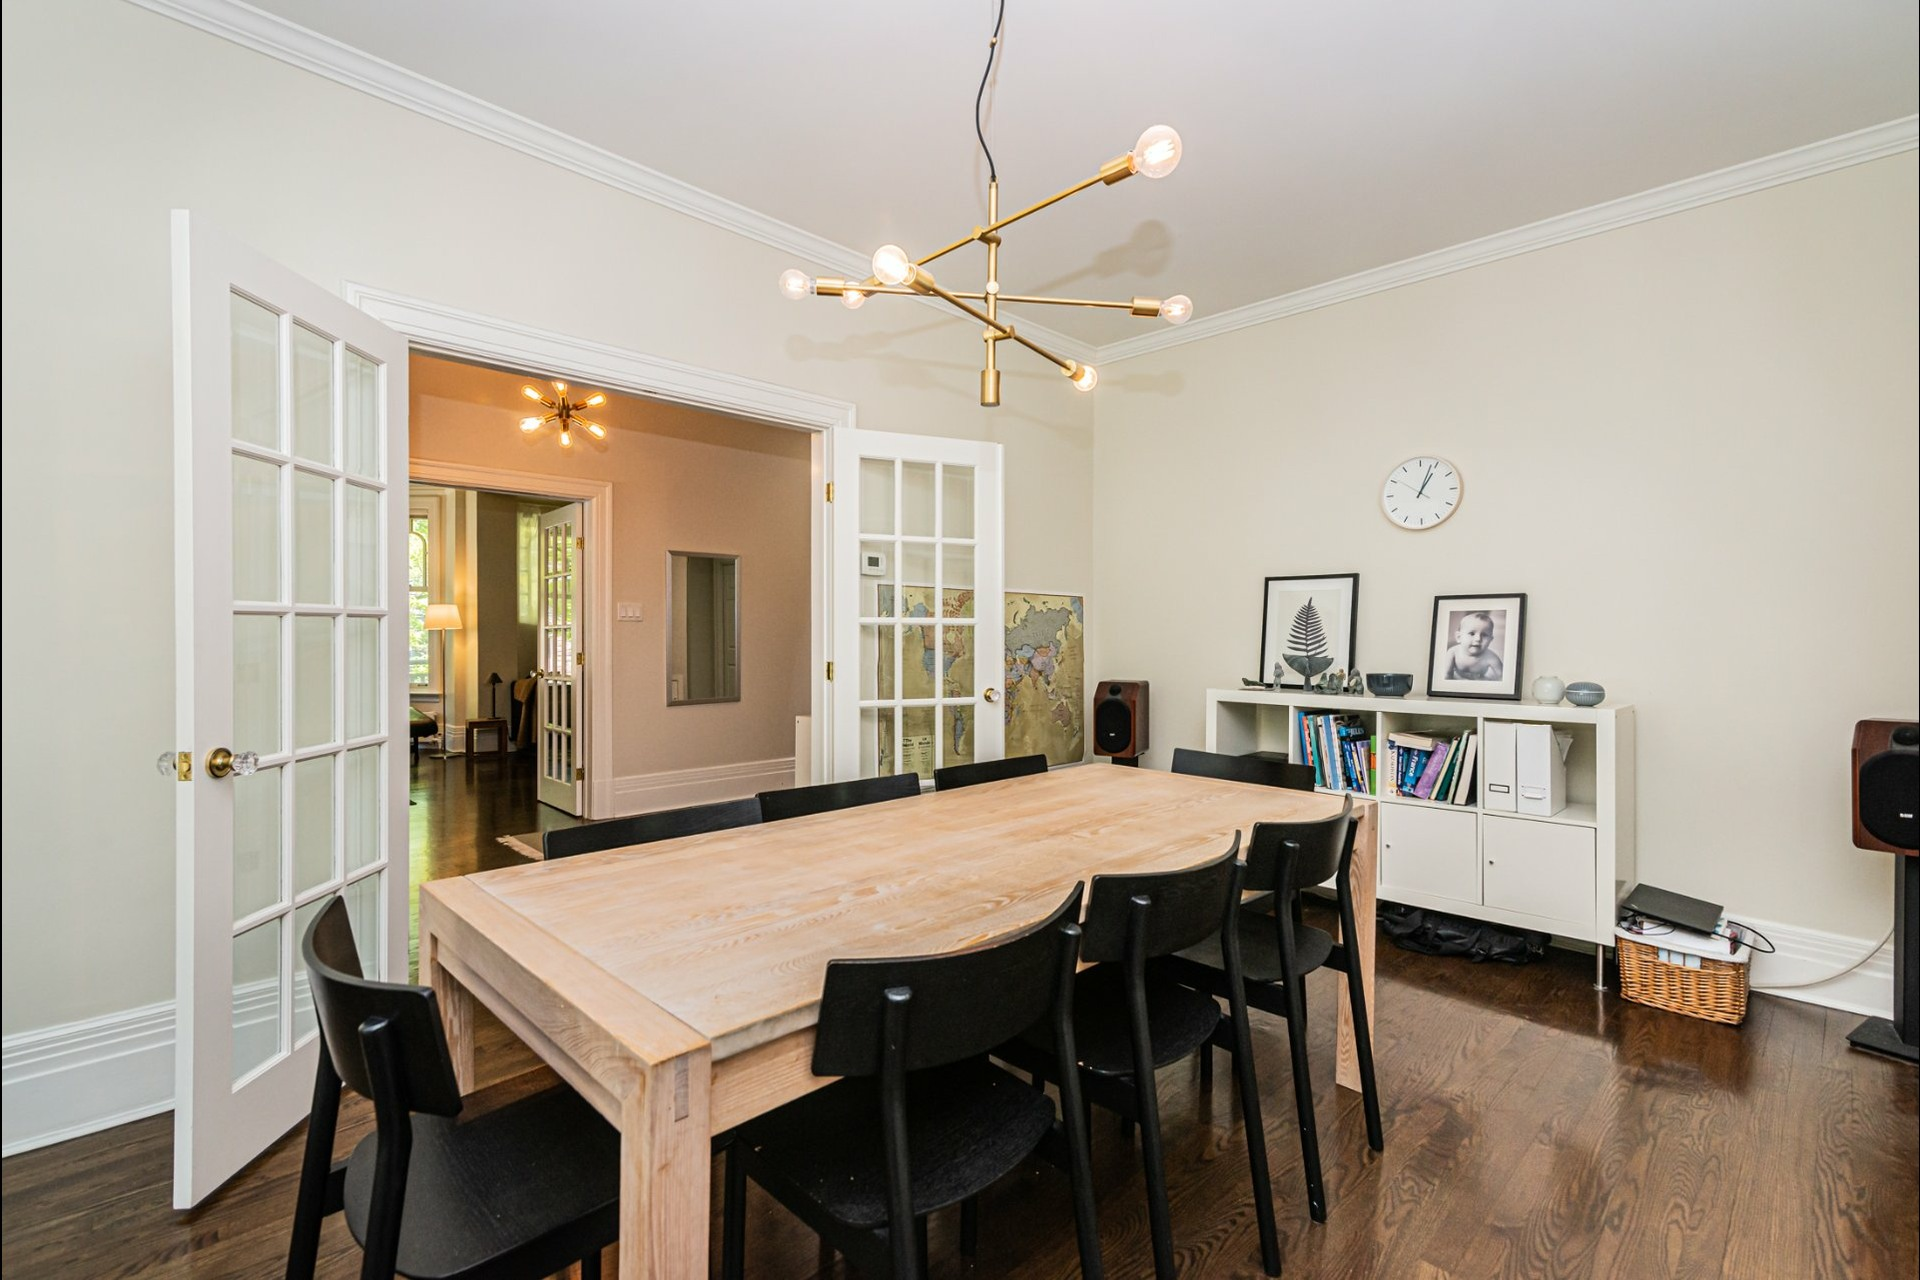 image 12 - House For rent Westmount - 8 rooms